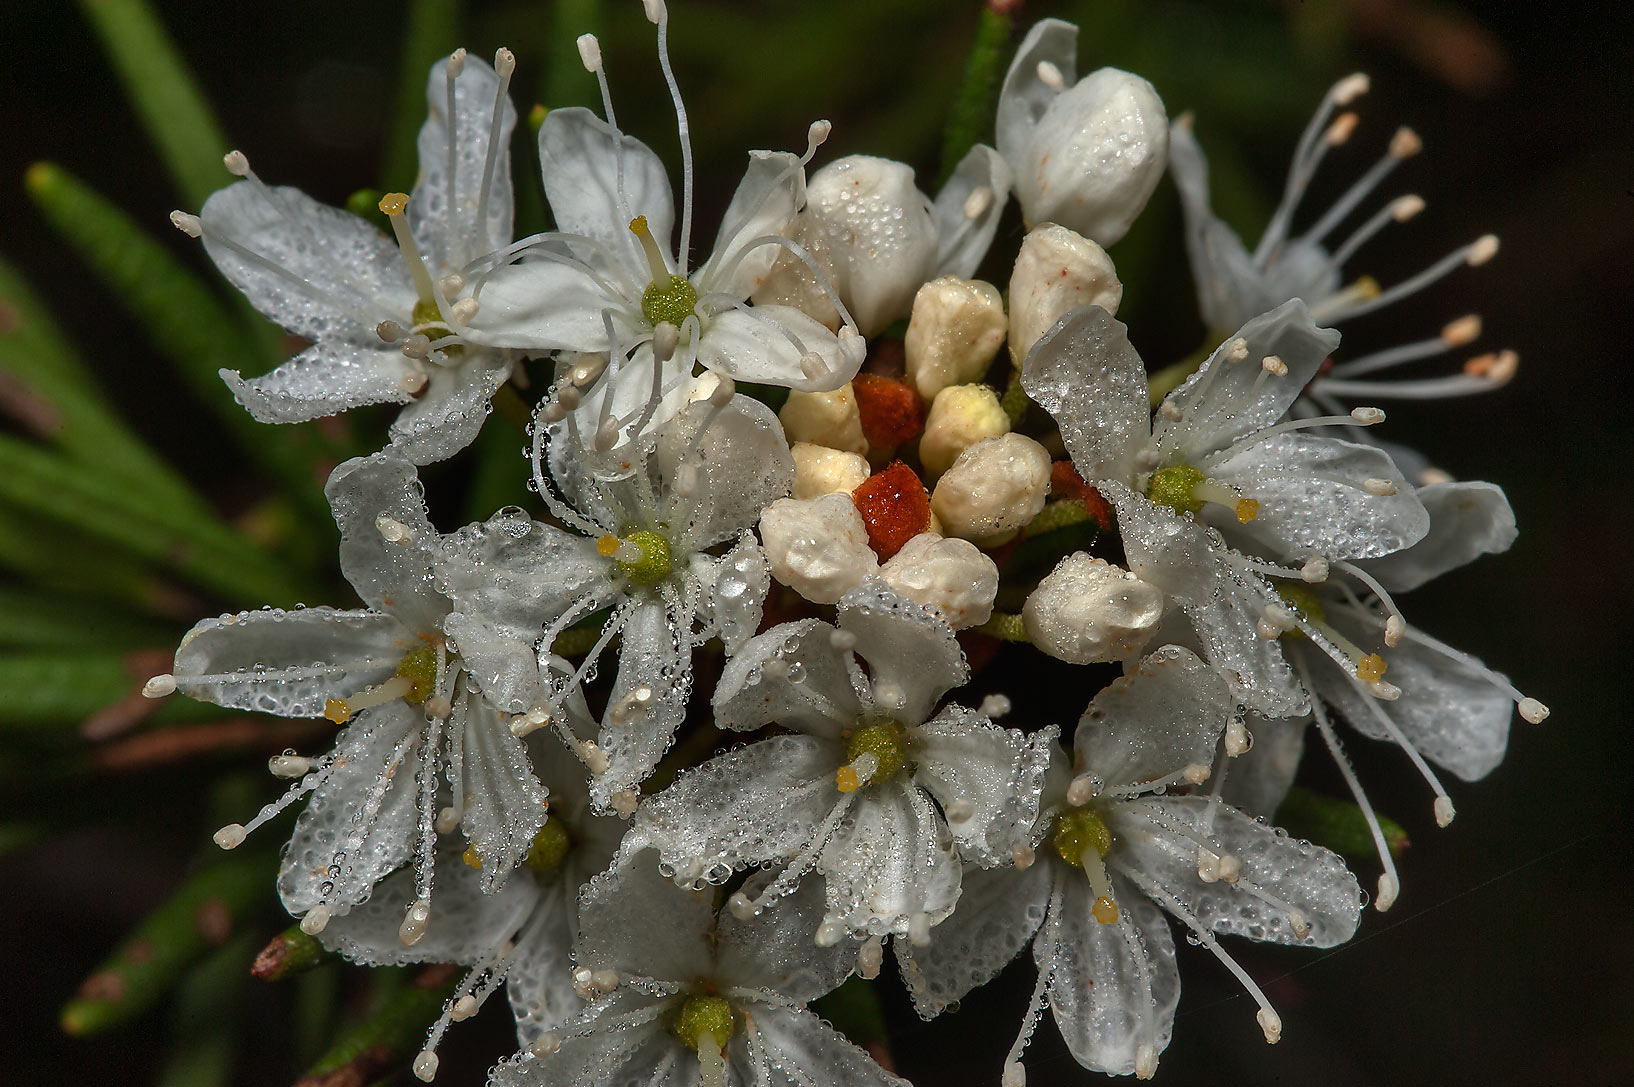 Flower buds of Labrador Tea (Ledum palustre) in...north from St.Petersburg. Russia